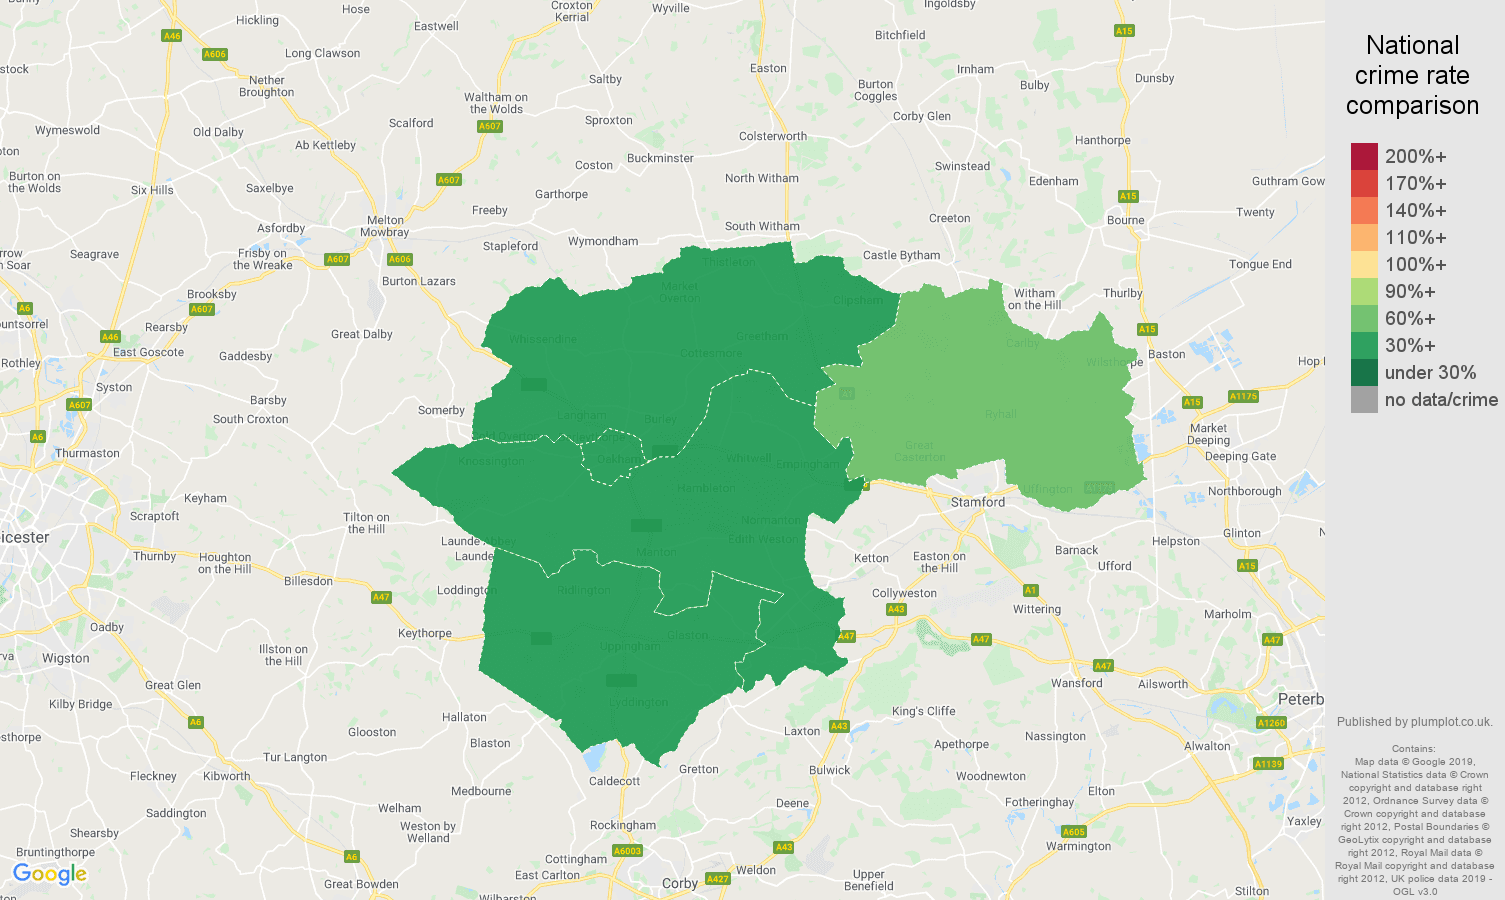 Rutland other theft crime rate comparison map